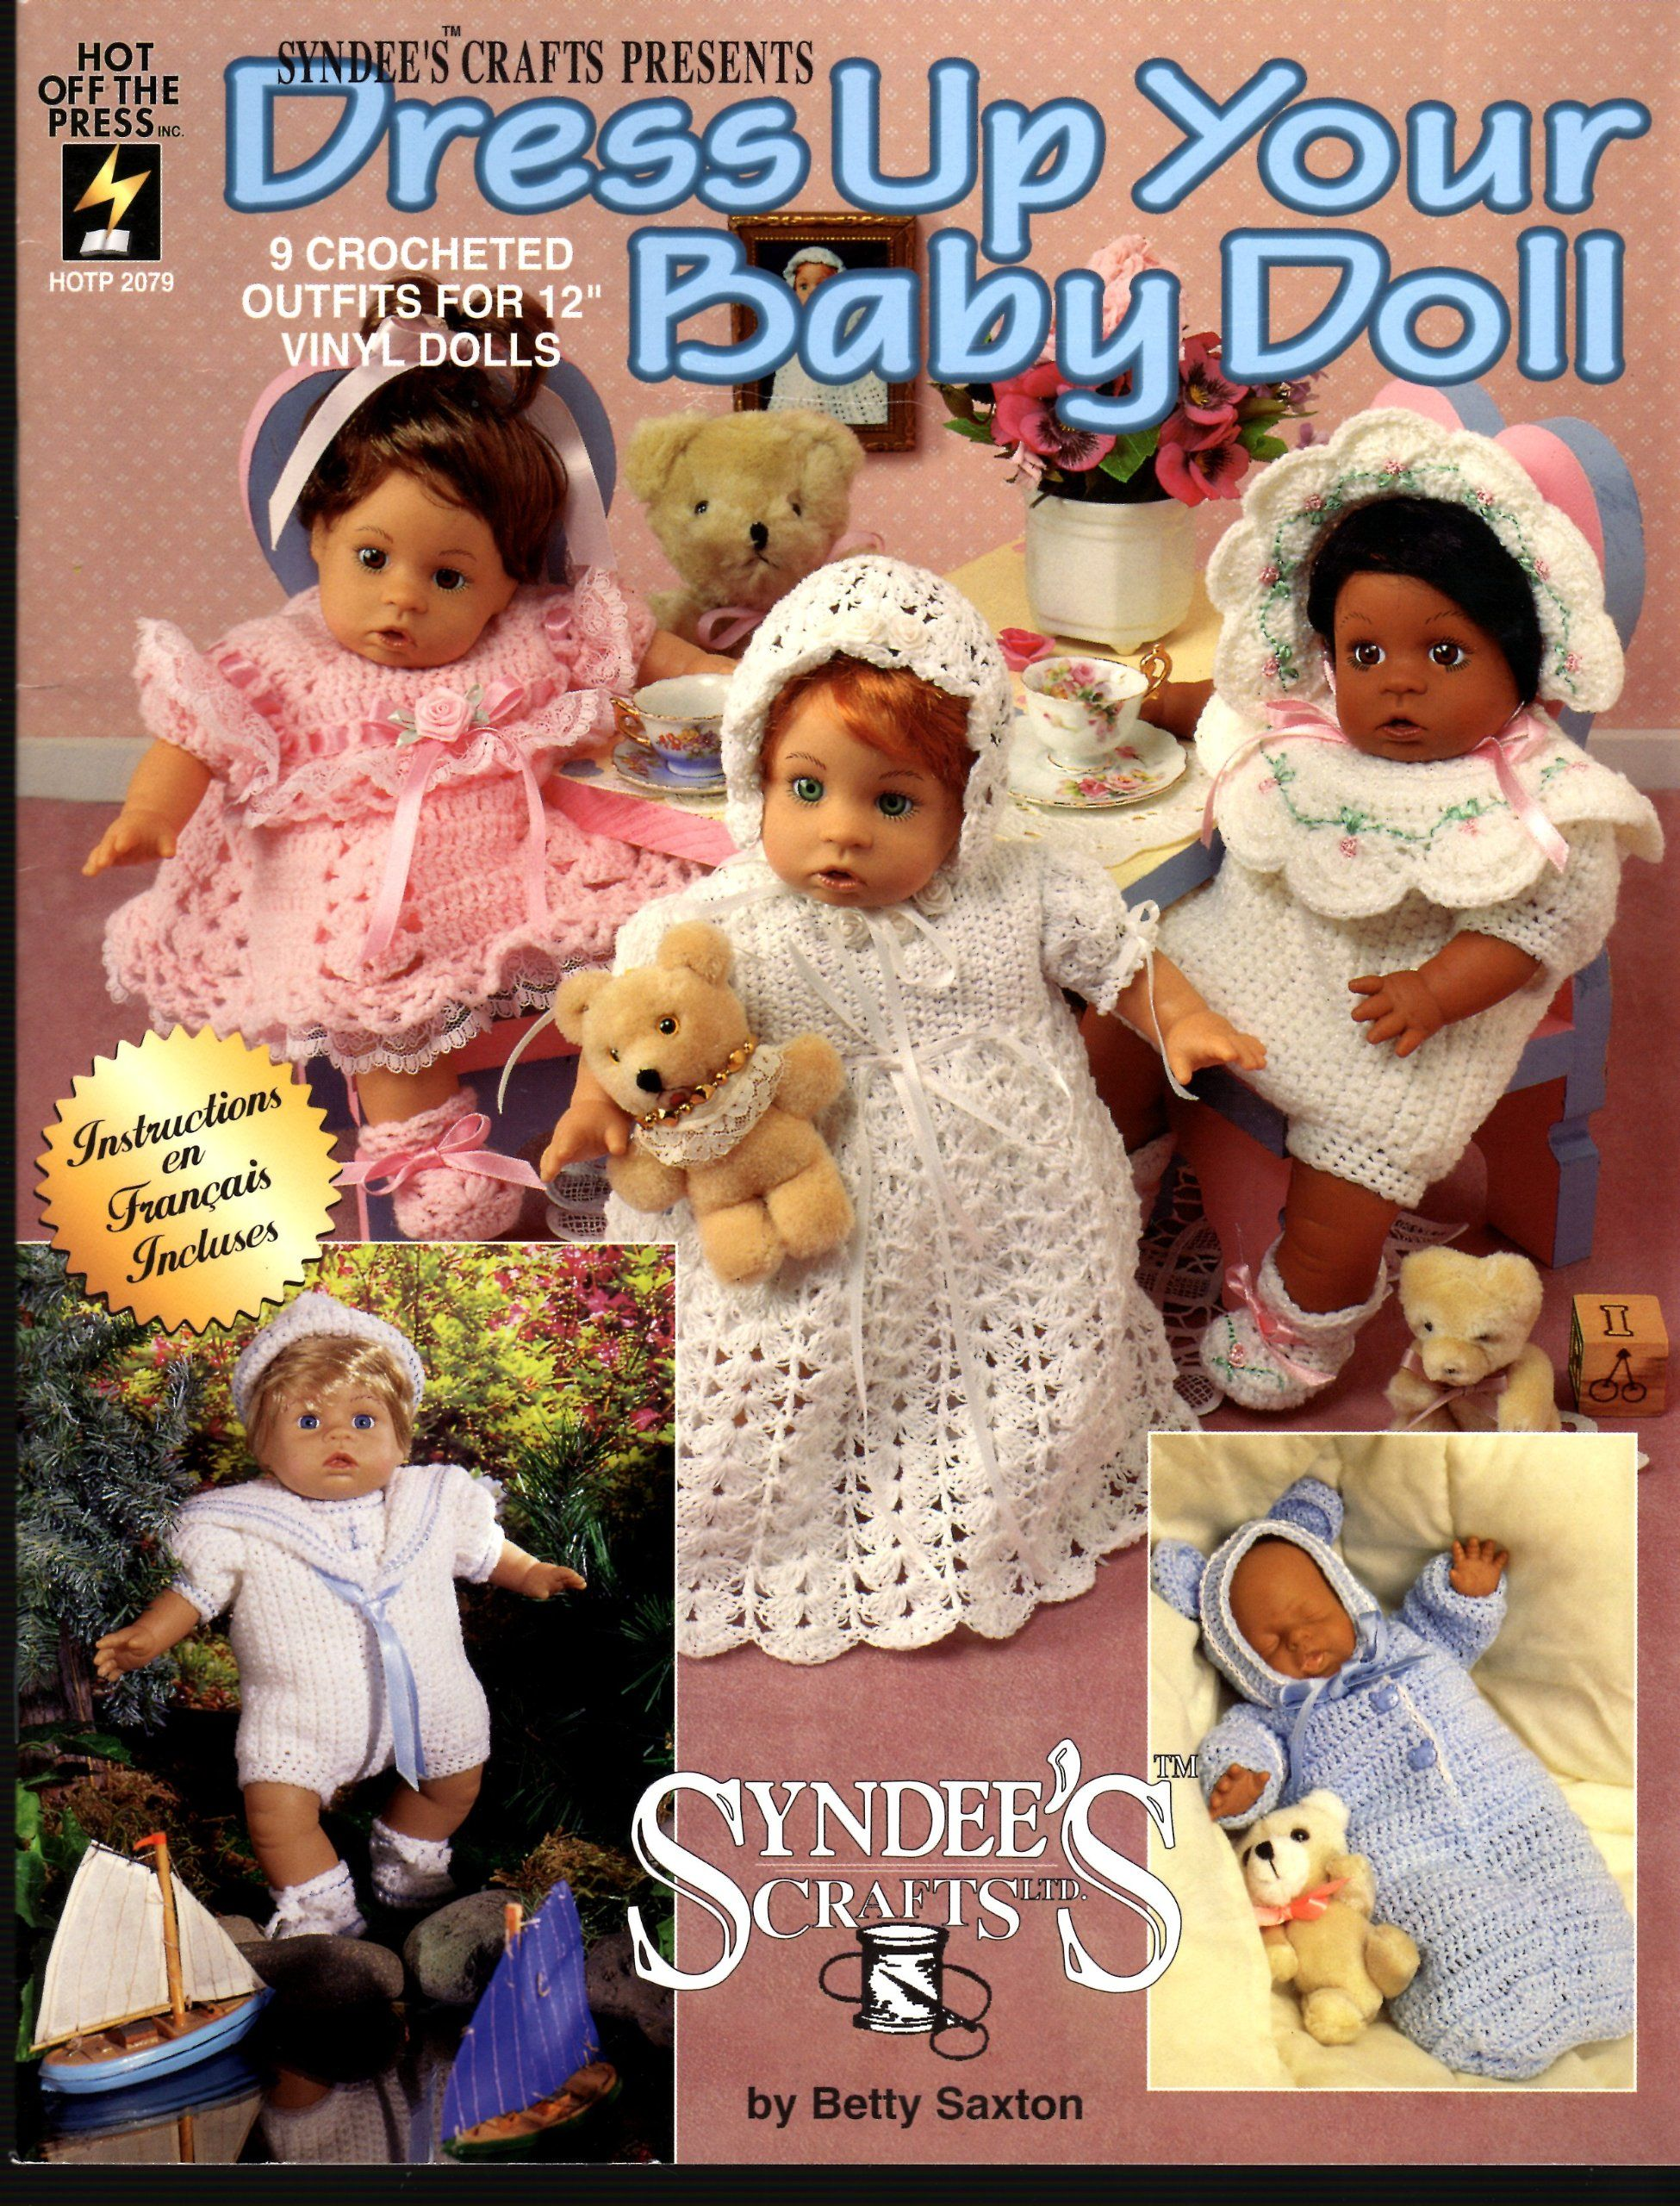 Dress Up Your Baby Doll 9 Crocheted Outfits for 12 inch Dolls